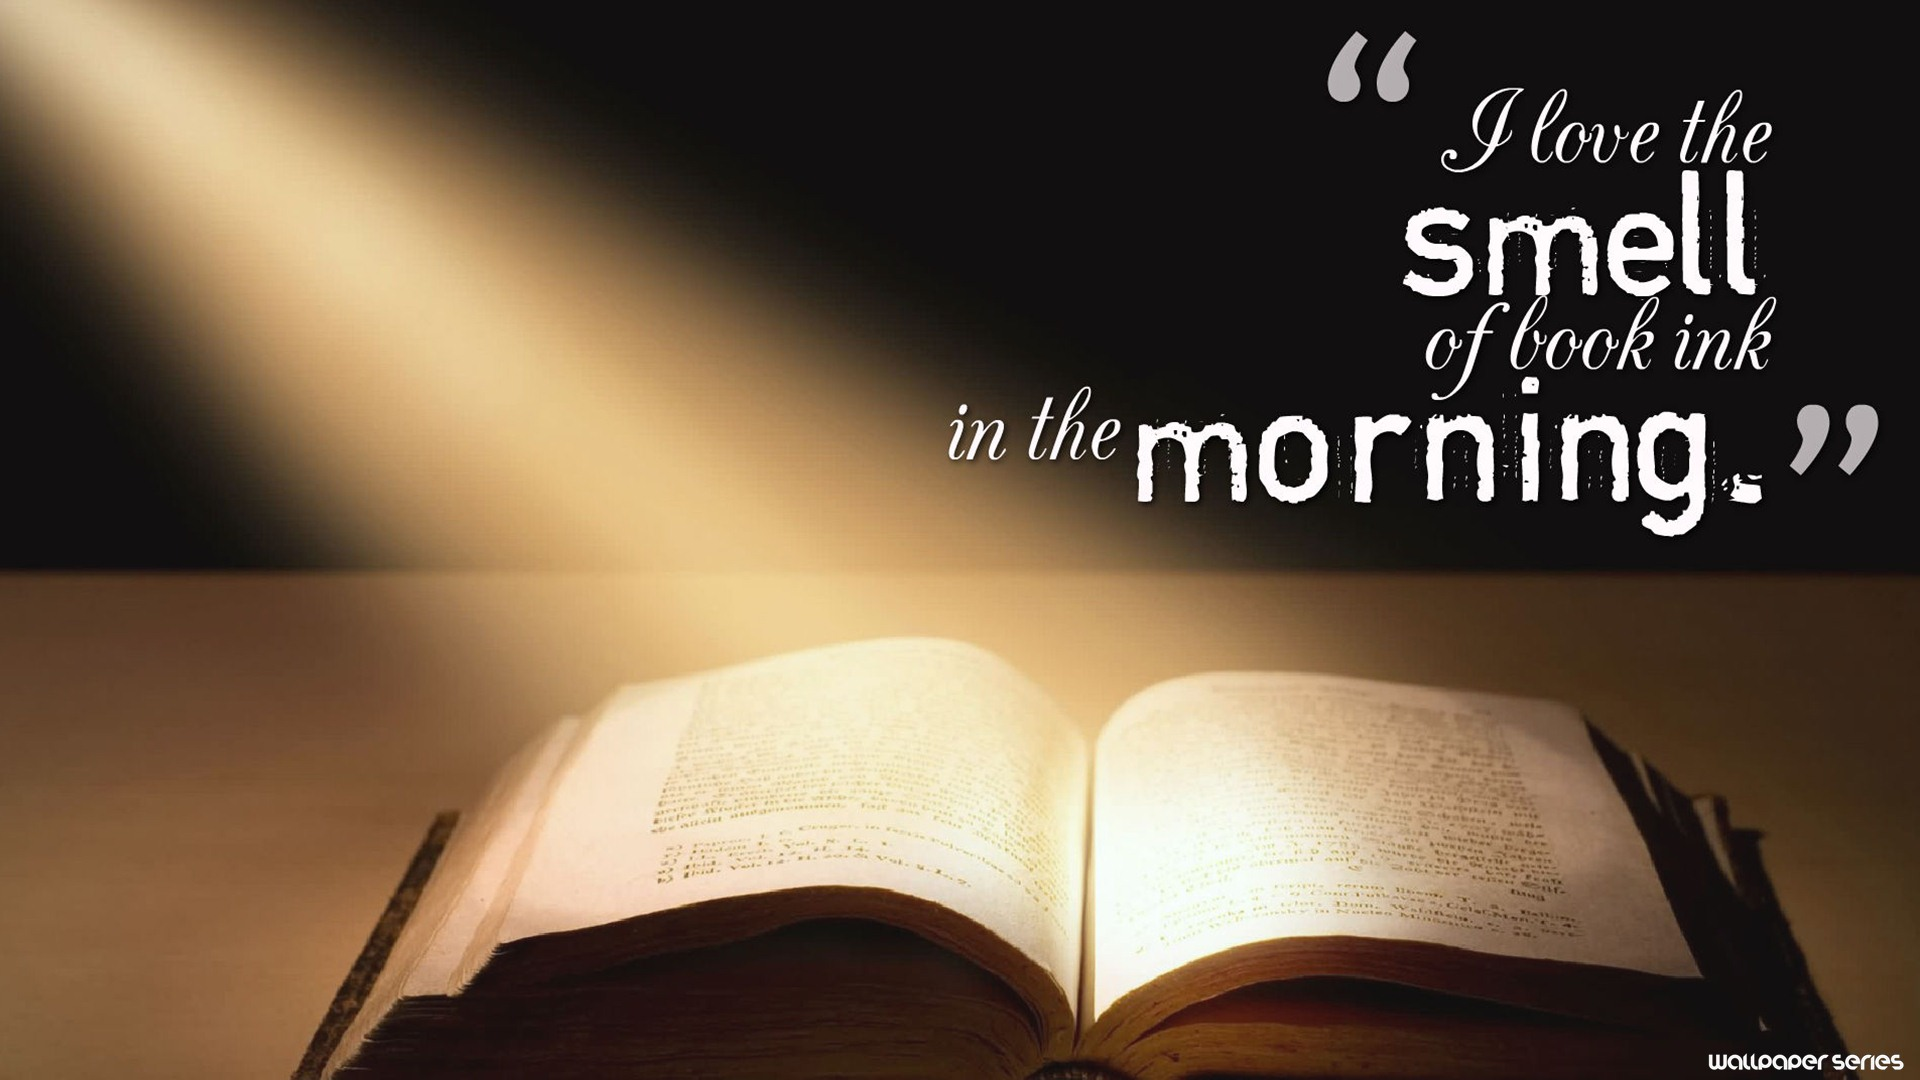 2560x1440 Wallpapers Hd Bible Quotes Book Smell Good Morning Quotes Wallpaper 05646 Baltana